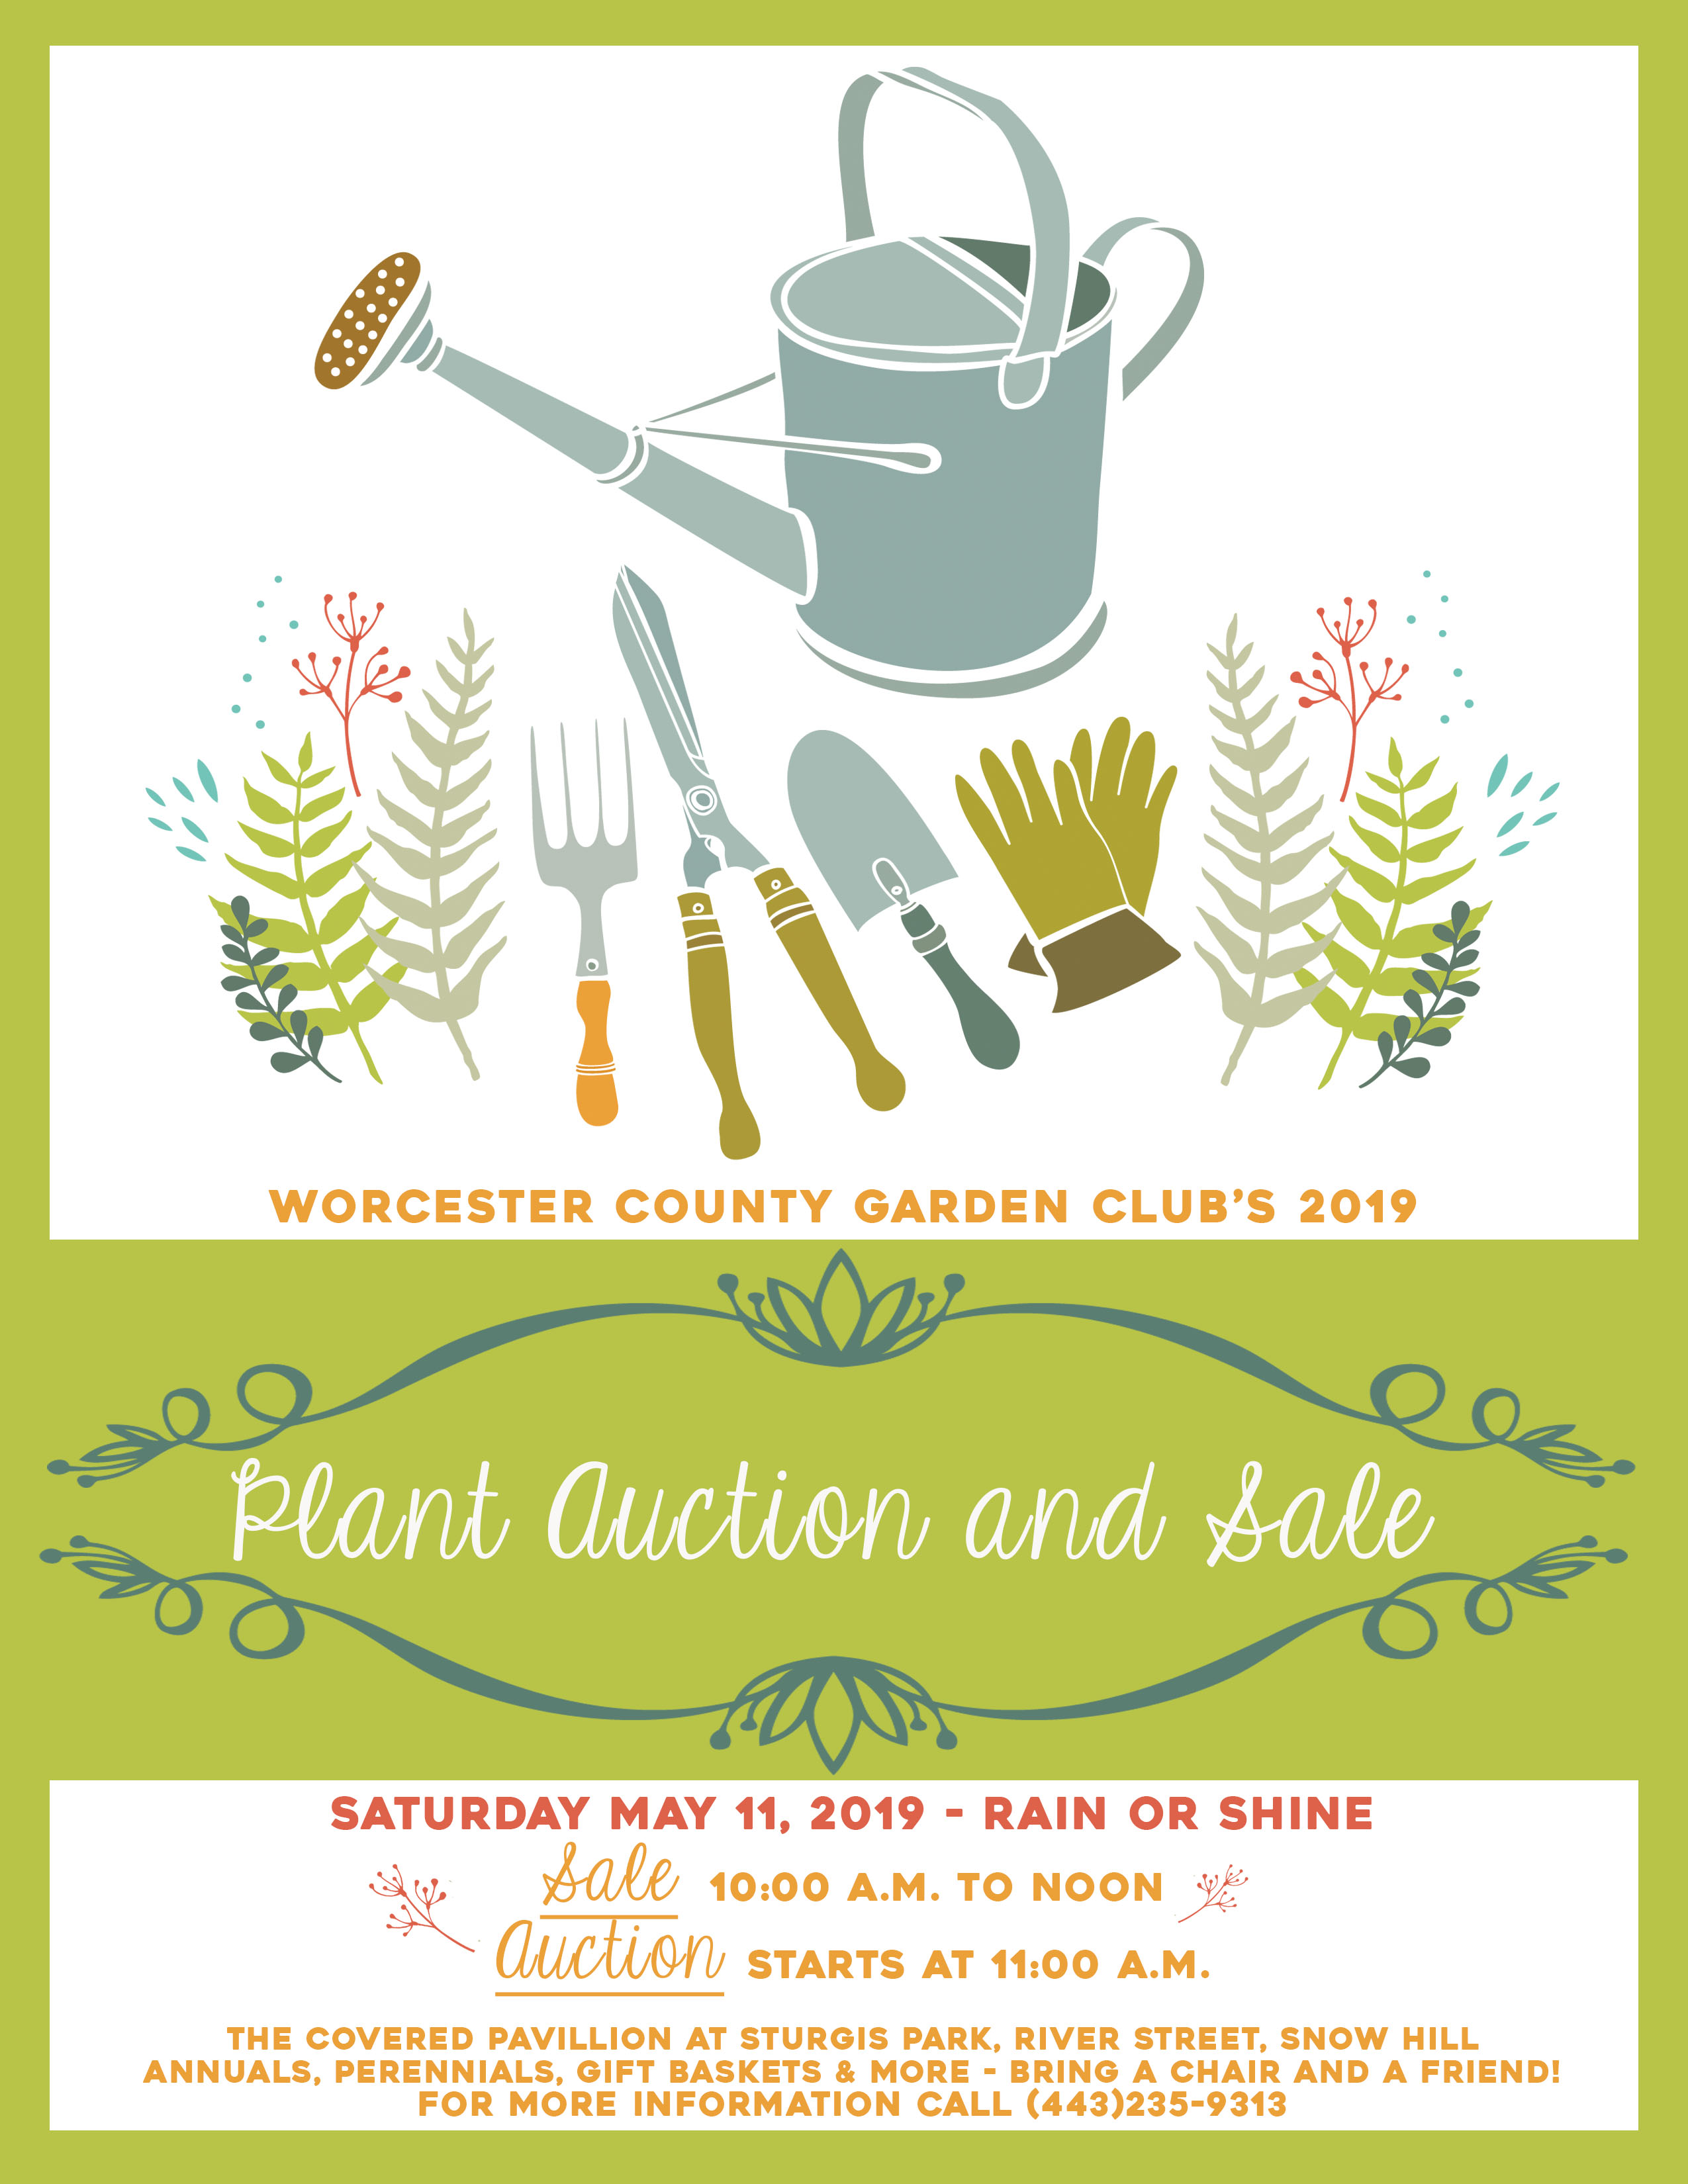 Worcester County Garden Club S 2019 Plant Auction And Sale